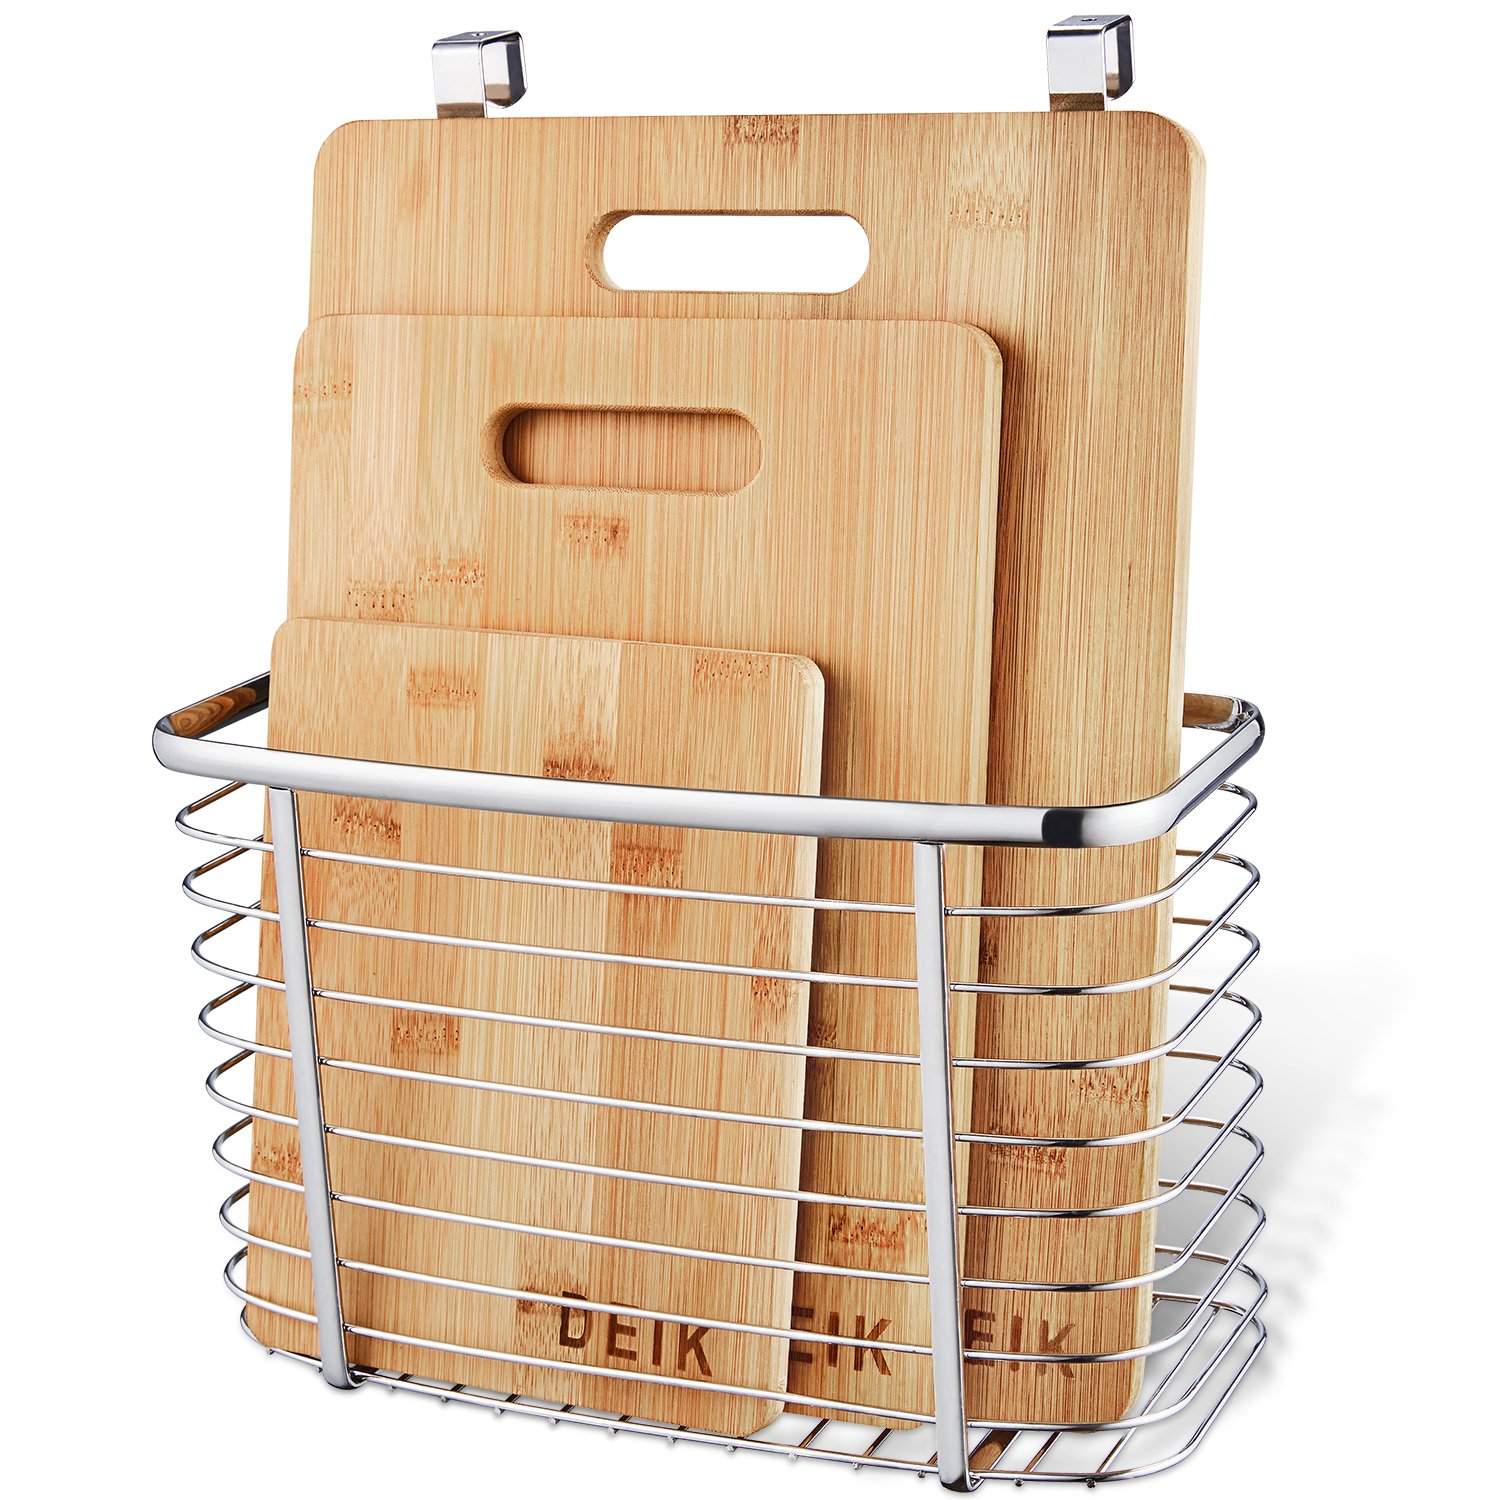 Cutting Board, DEIK Bamboo Cutting Board Set, Kitchen Chopping Board Set of 3 Packed with A Stainless Steel Storage Wire Basket Holder, Organic and Anti-bacteria by DEIK